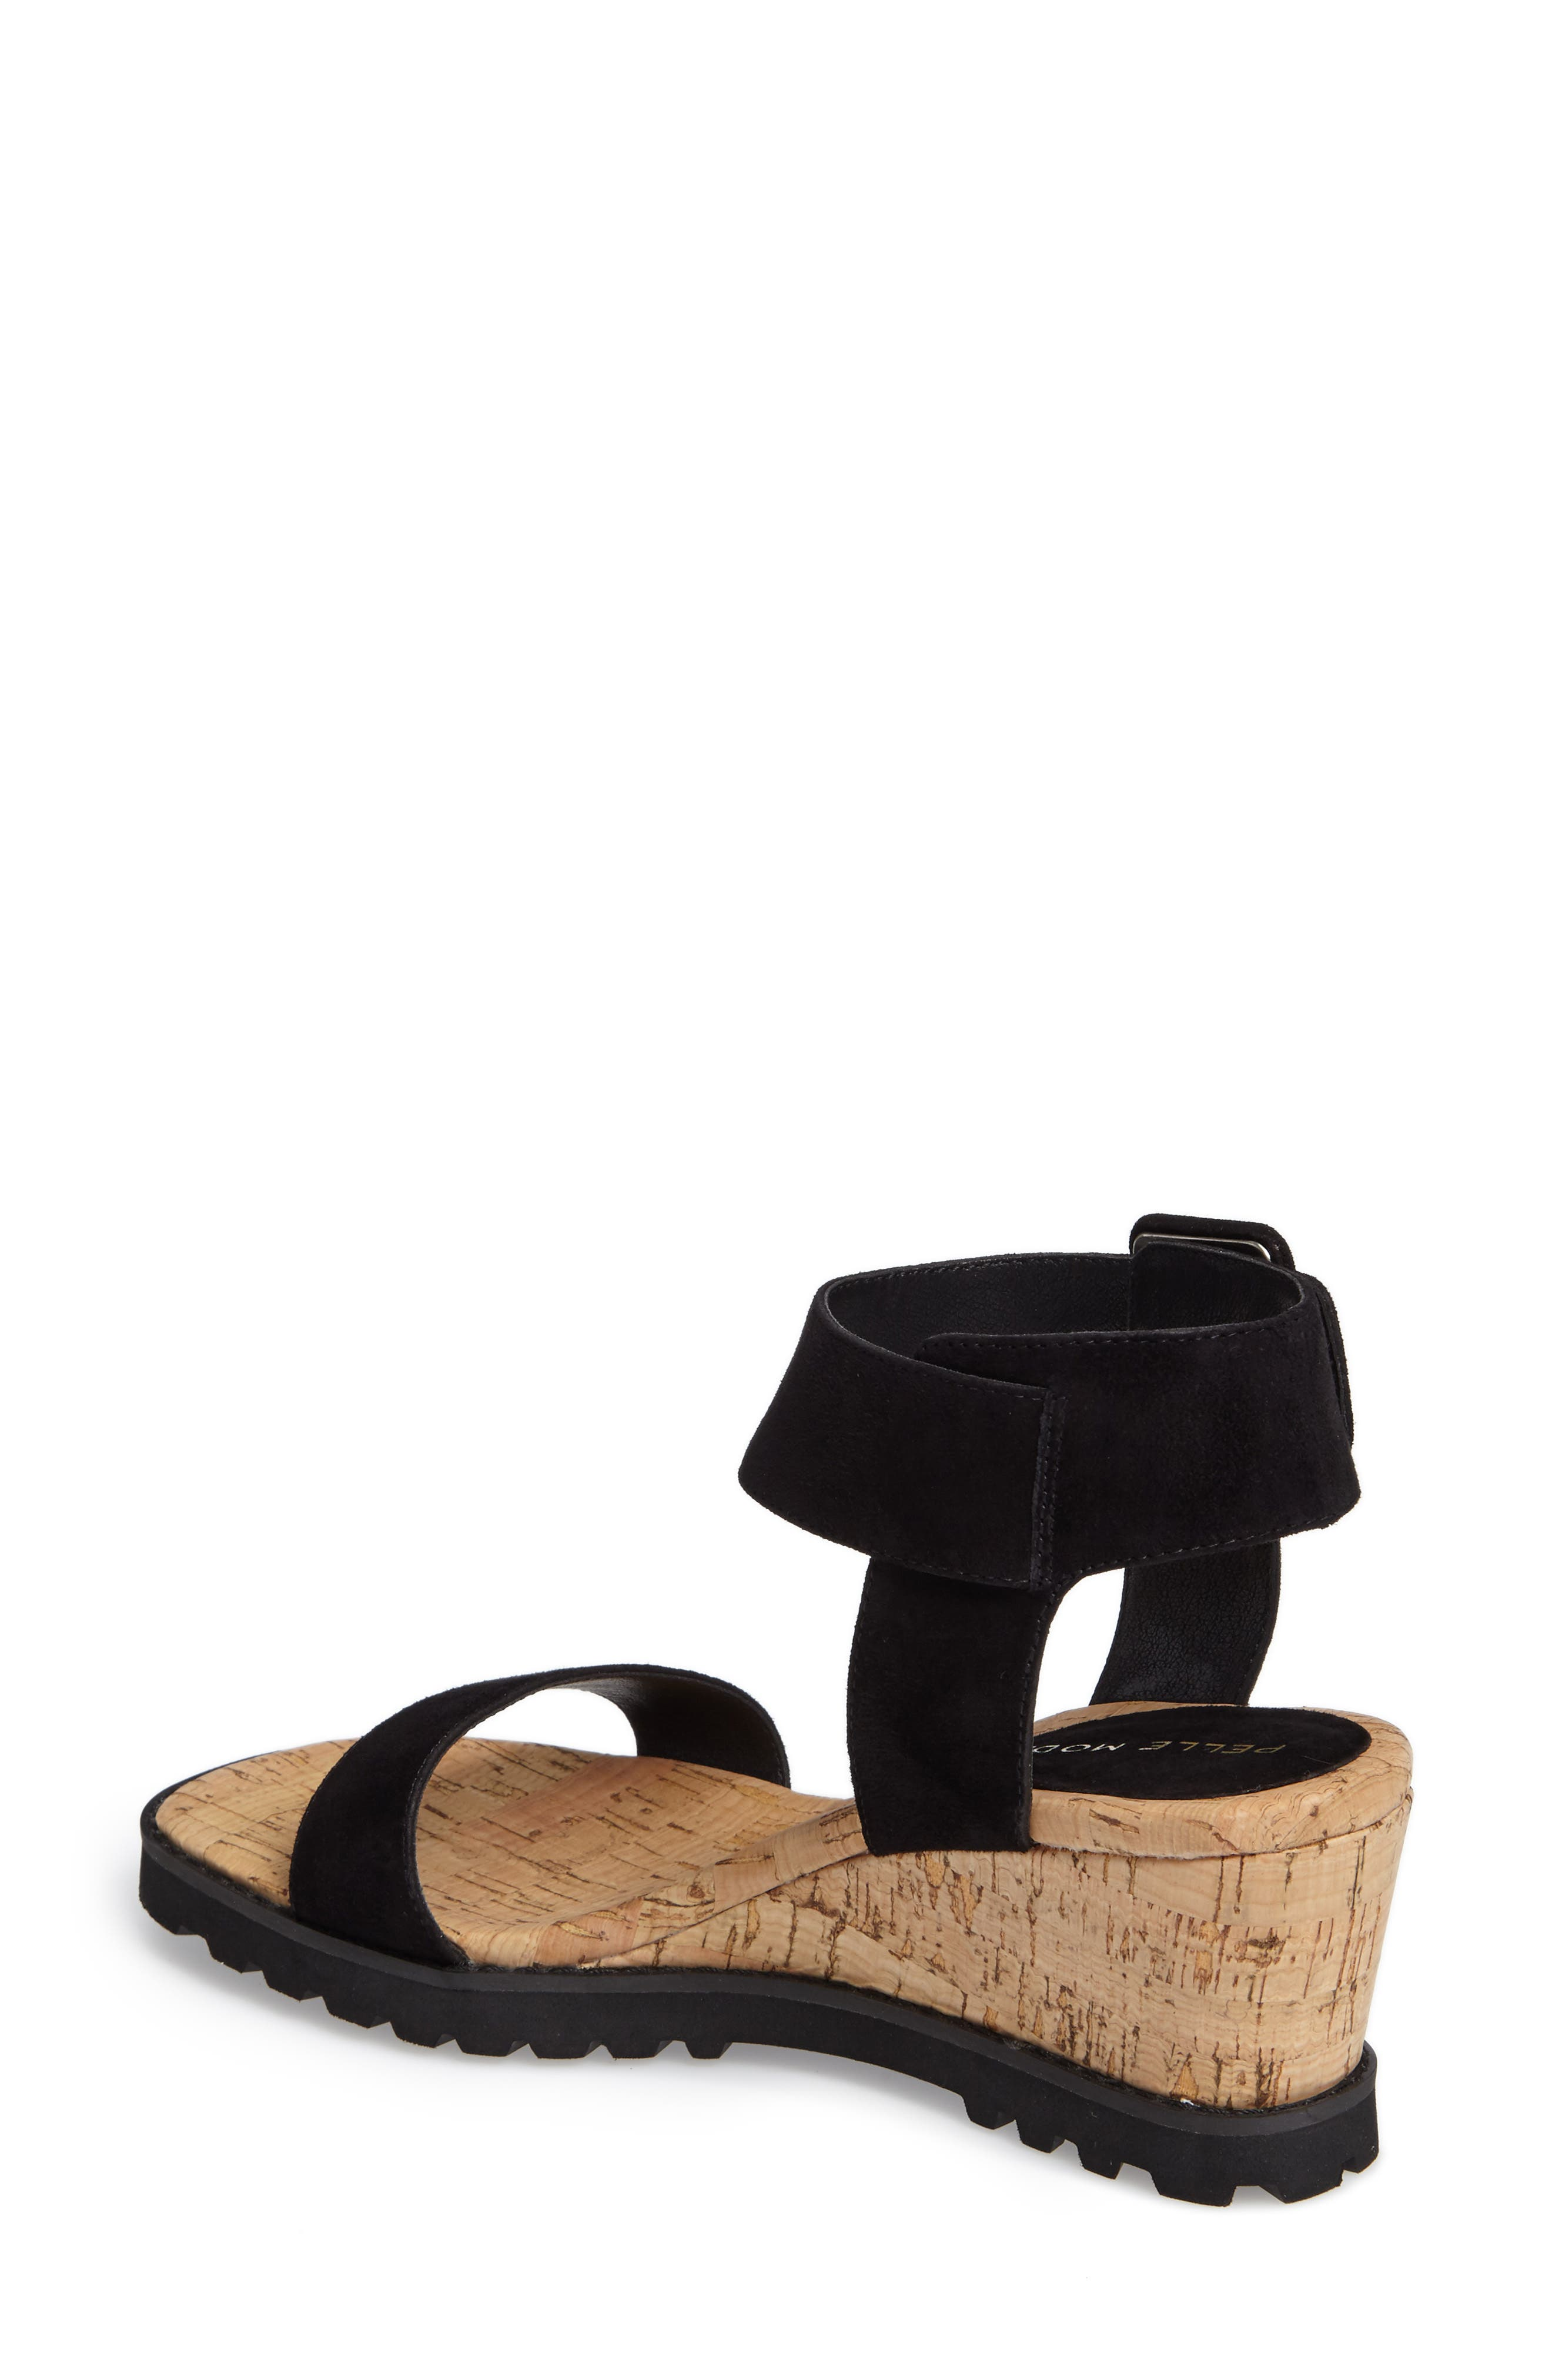 Rian Wedge Sandal,                             Alternate thumbnail 2, color,                             Black Leather